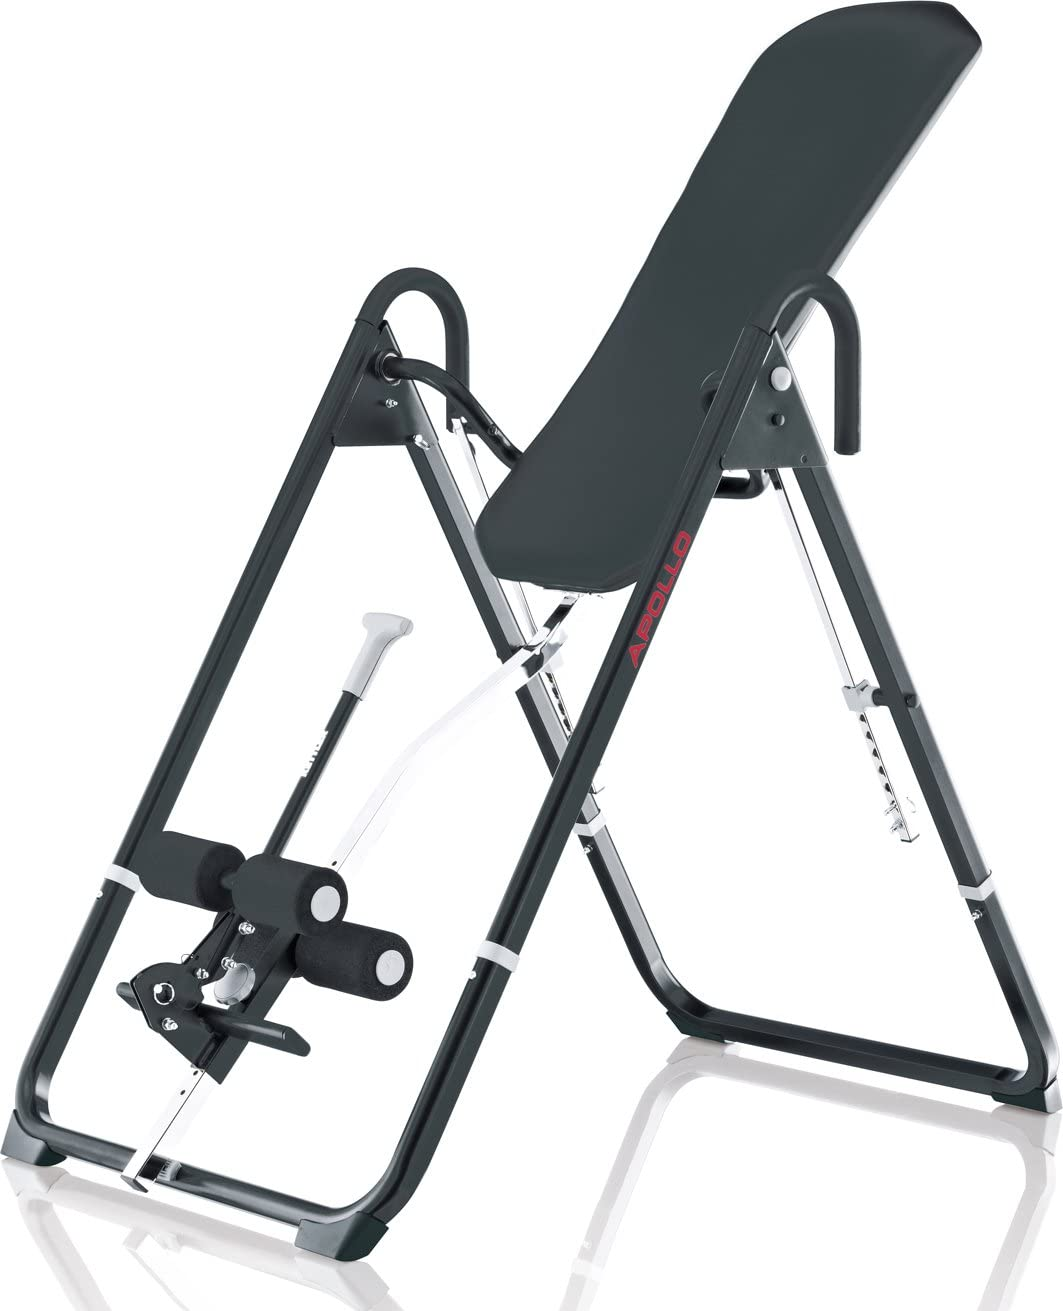 Kettler Home Exercise Fitness Equipment APOLLO Gravity Inversion Therapy Table